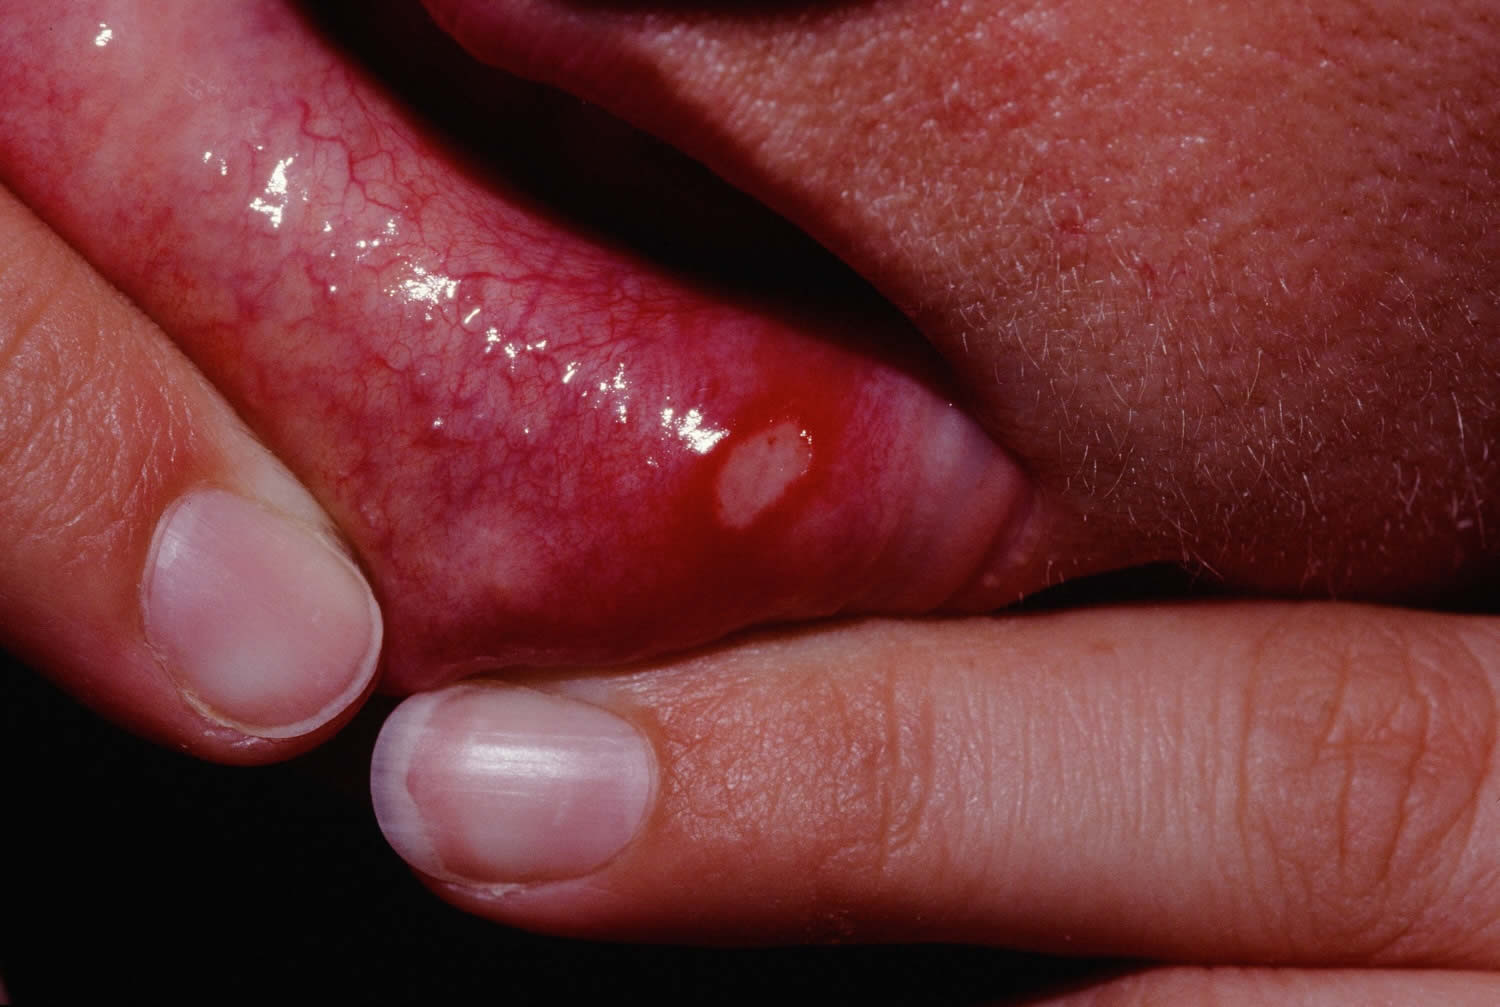 Oral aphthous ulcers — photo 7